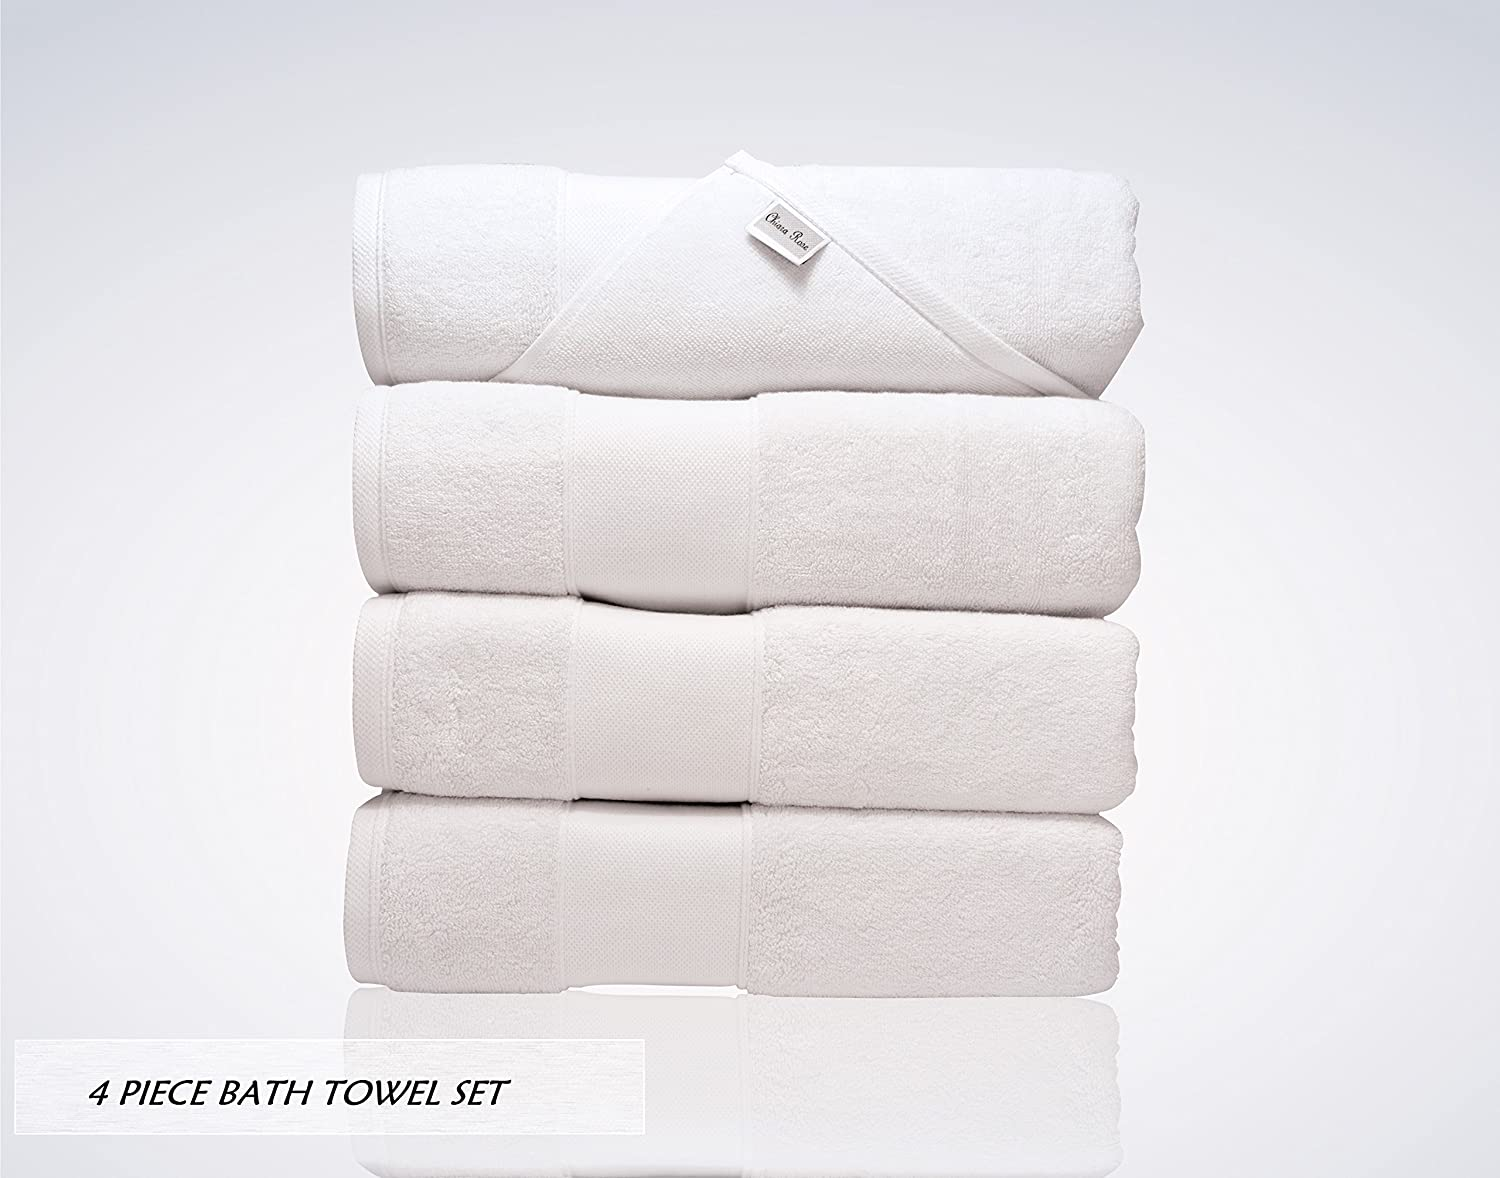 Chiara Rose Lint Free Turkish Bath Towel Set